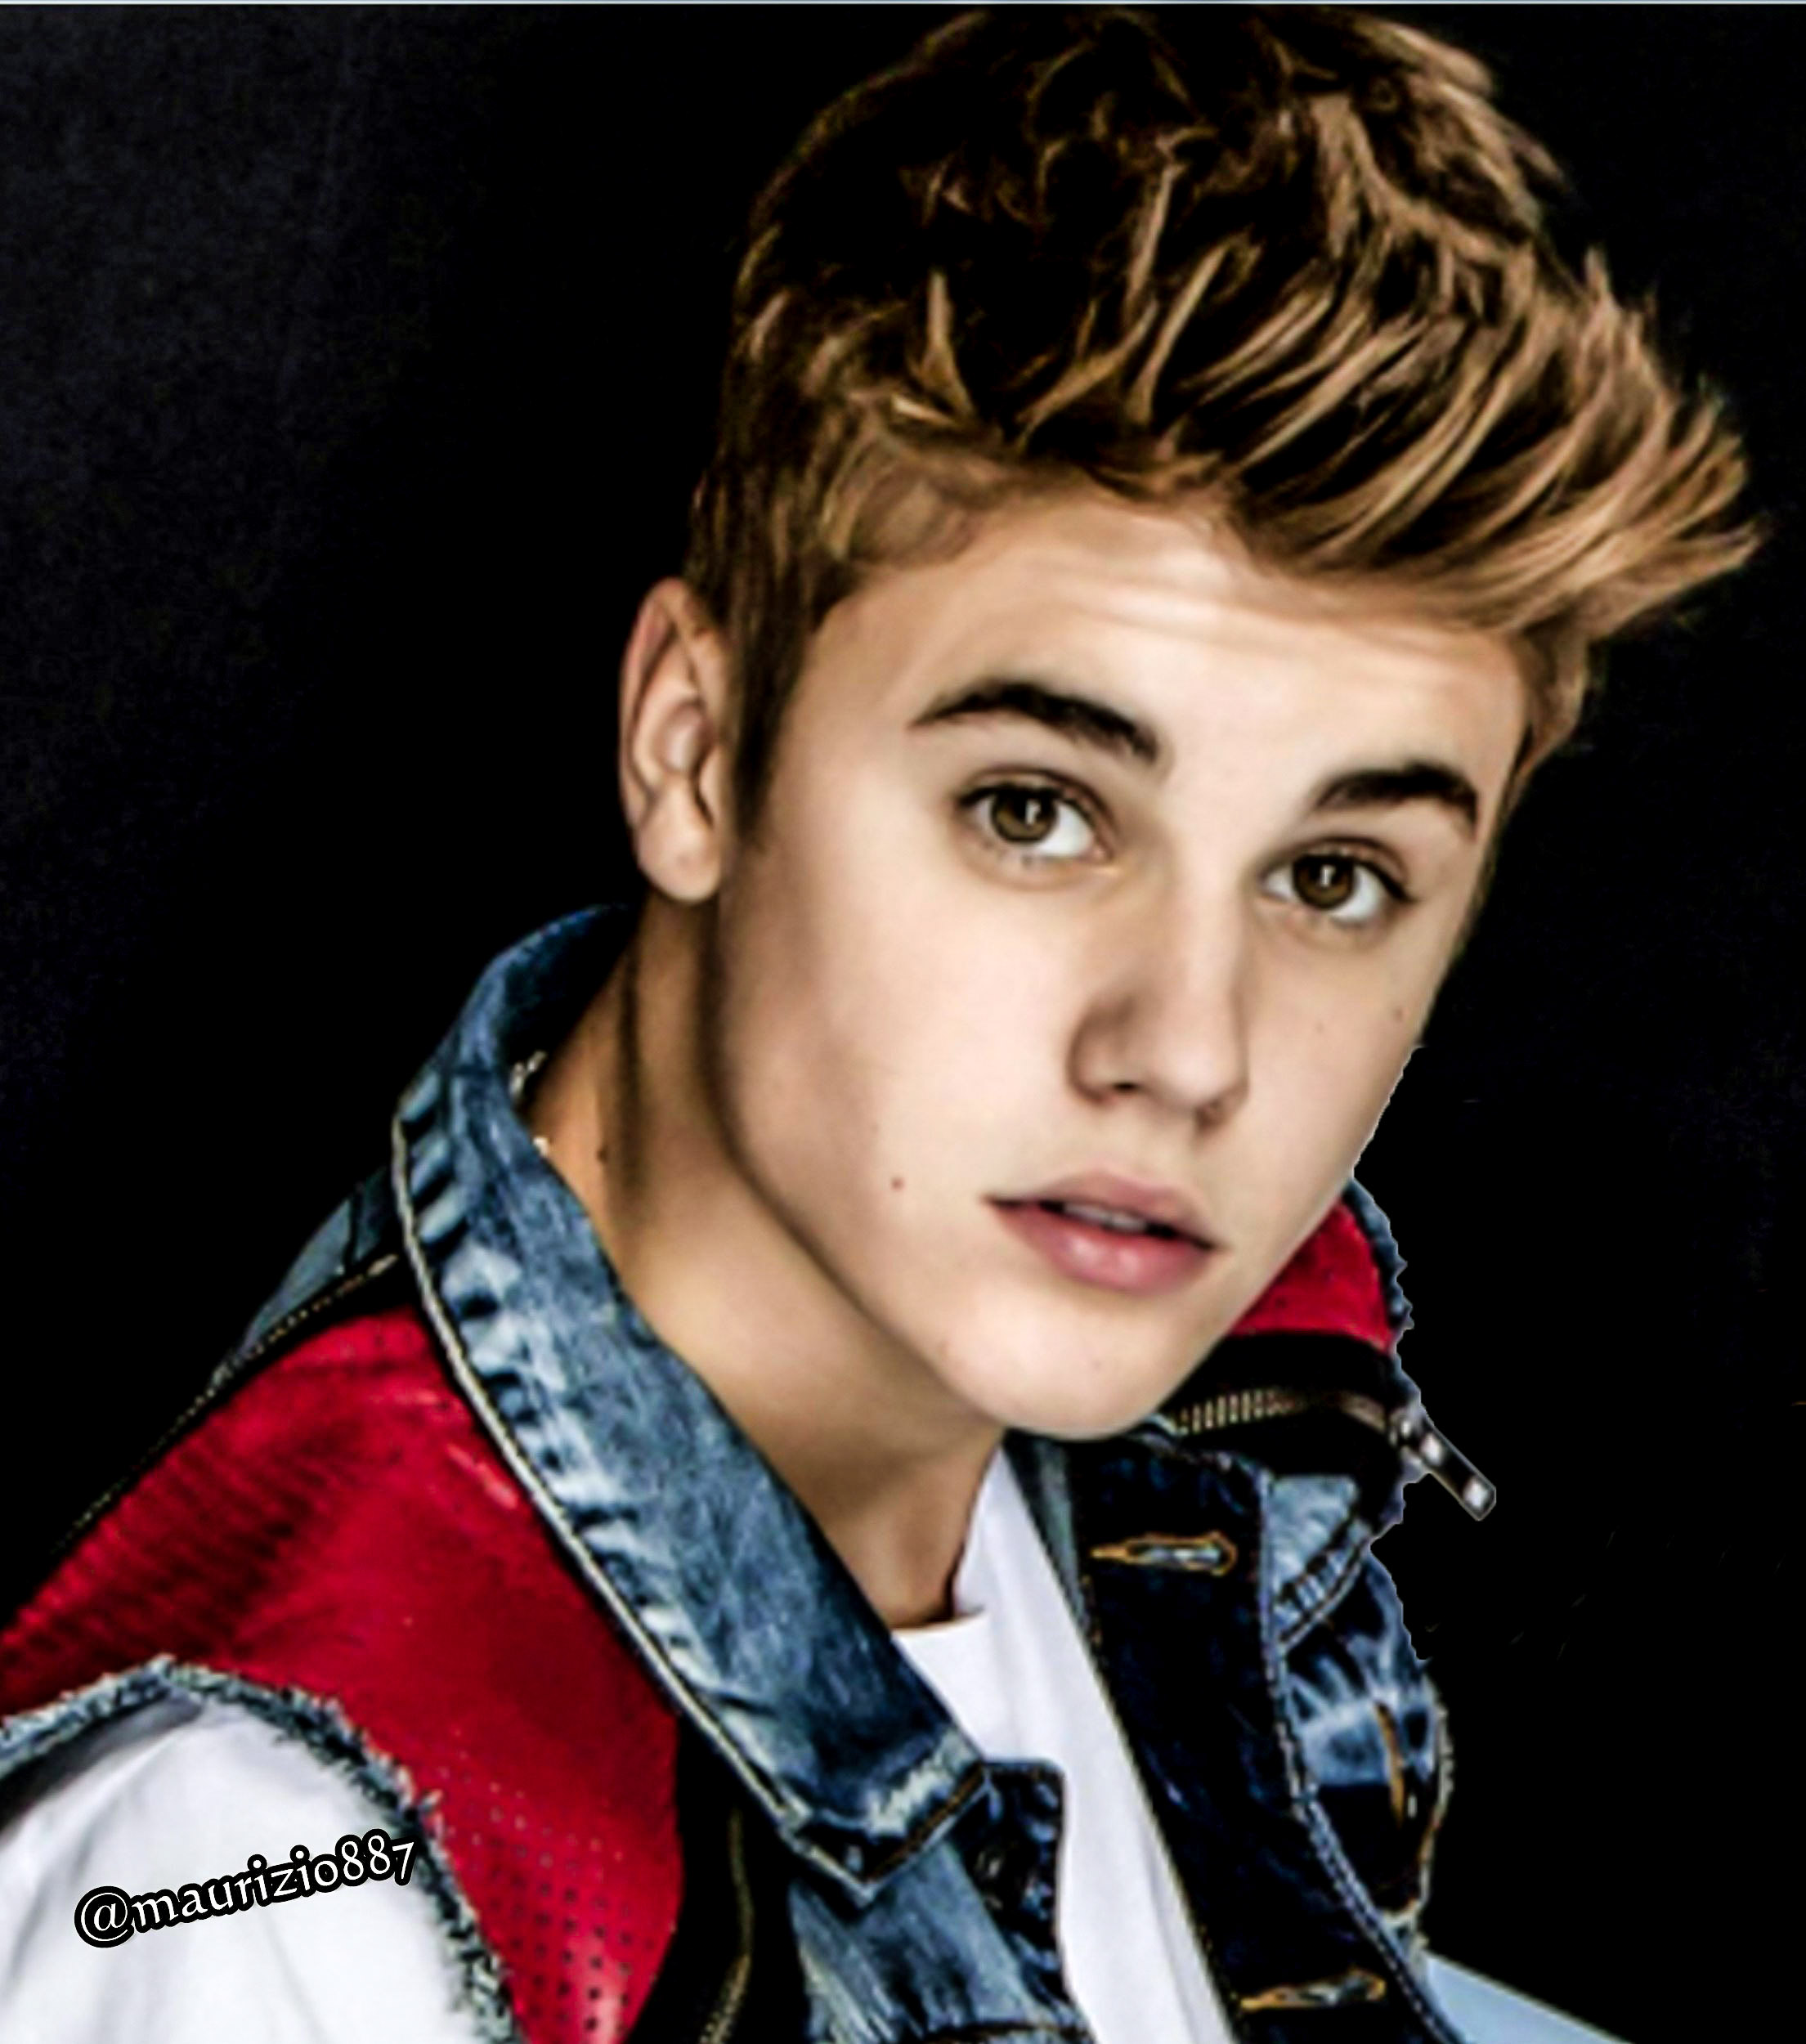 Justin Bieber Images BpMsQBe HD Wallpaper And Background Photos